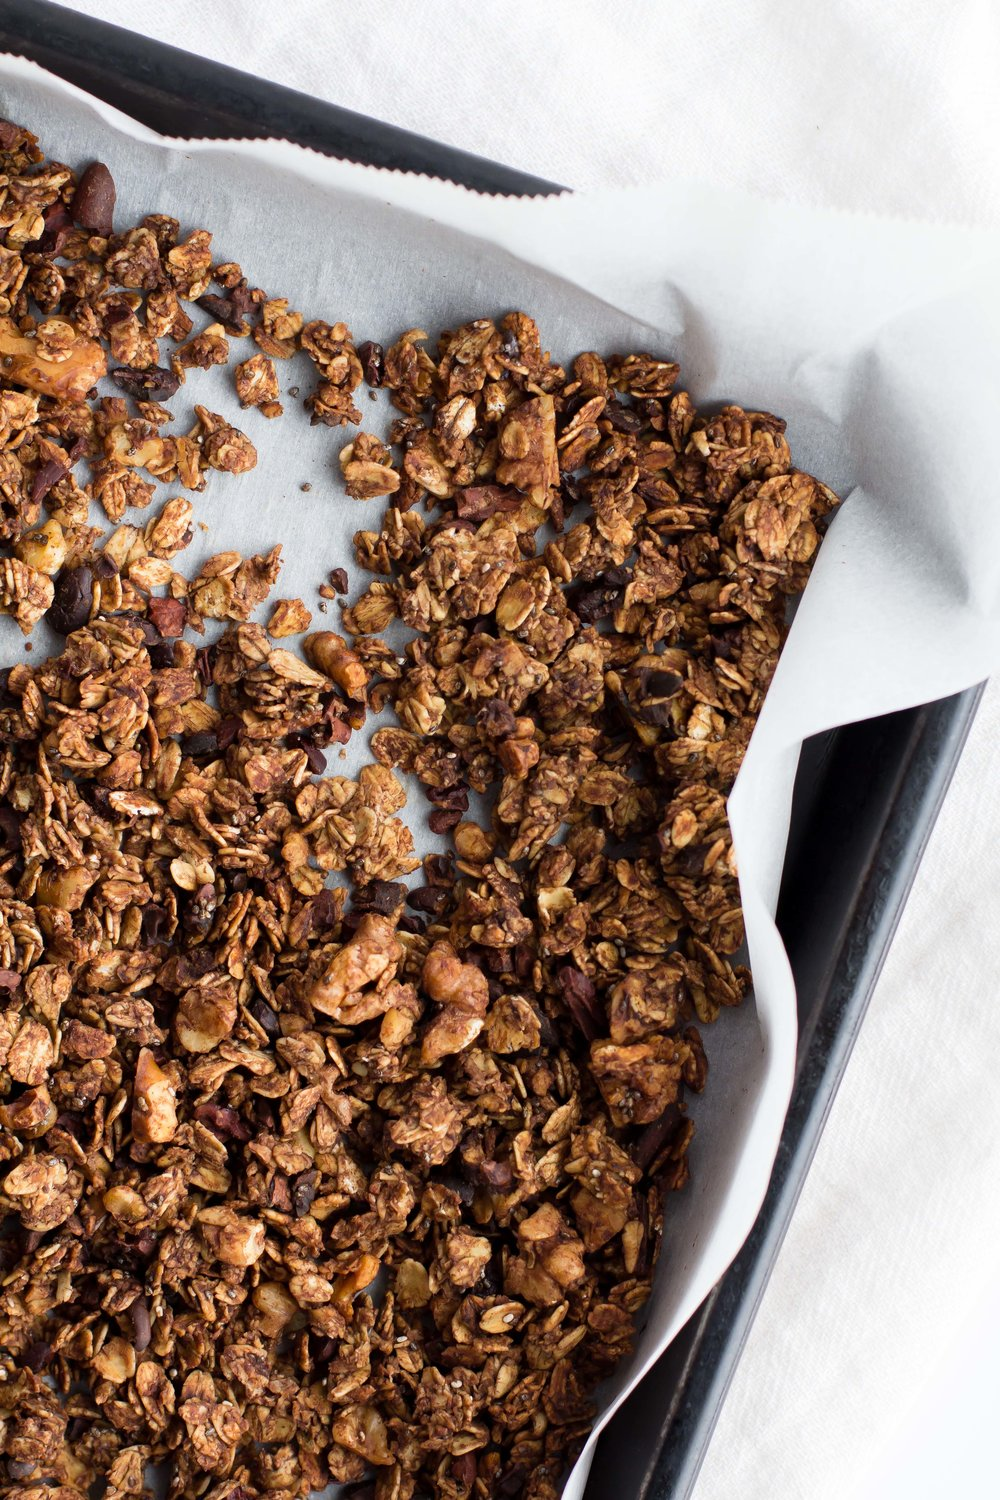 Cold Brew Granola with Chocolate, Walnuts + Chia Seeds | Sarah J. Hauser